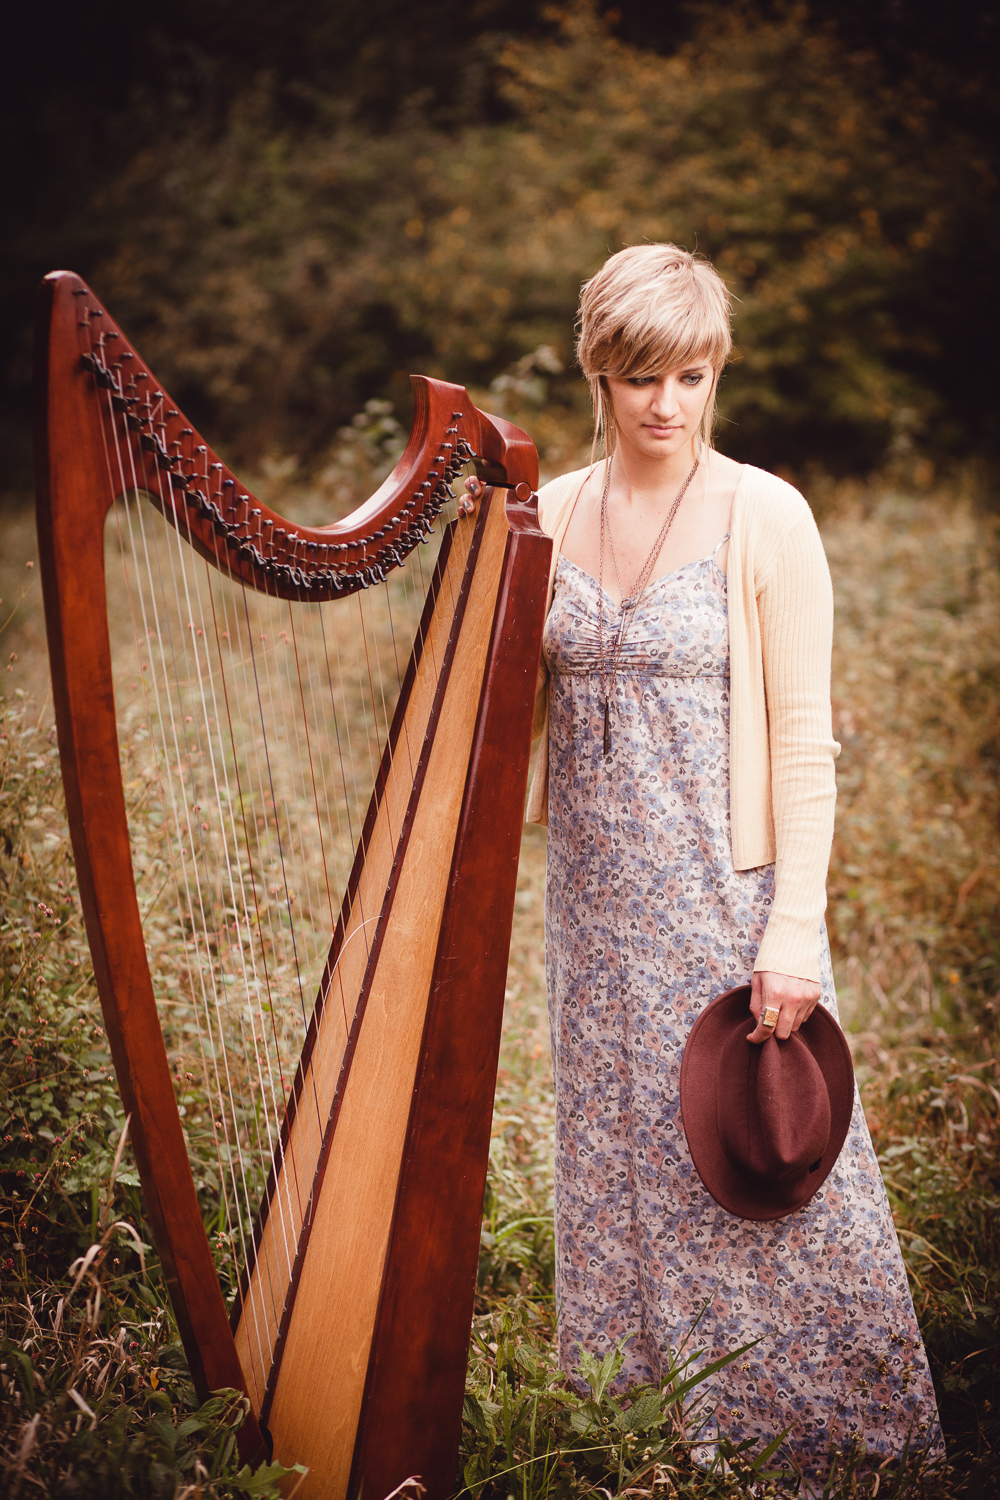 Central New Jersey Photographer Styled Photo Session with Harpists-3.jpg